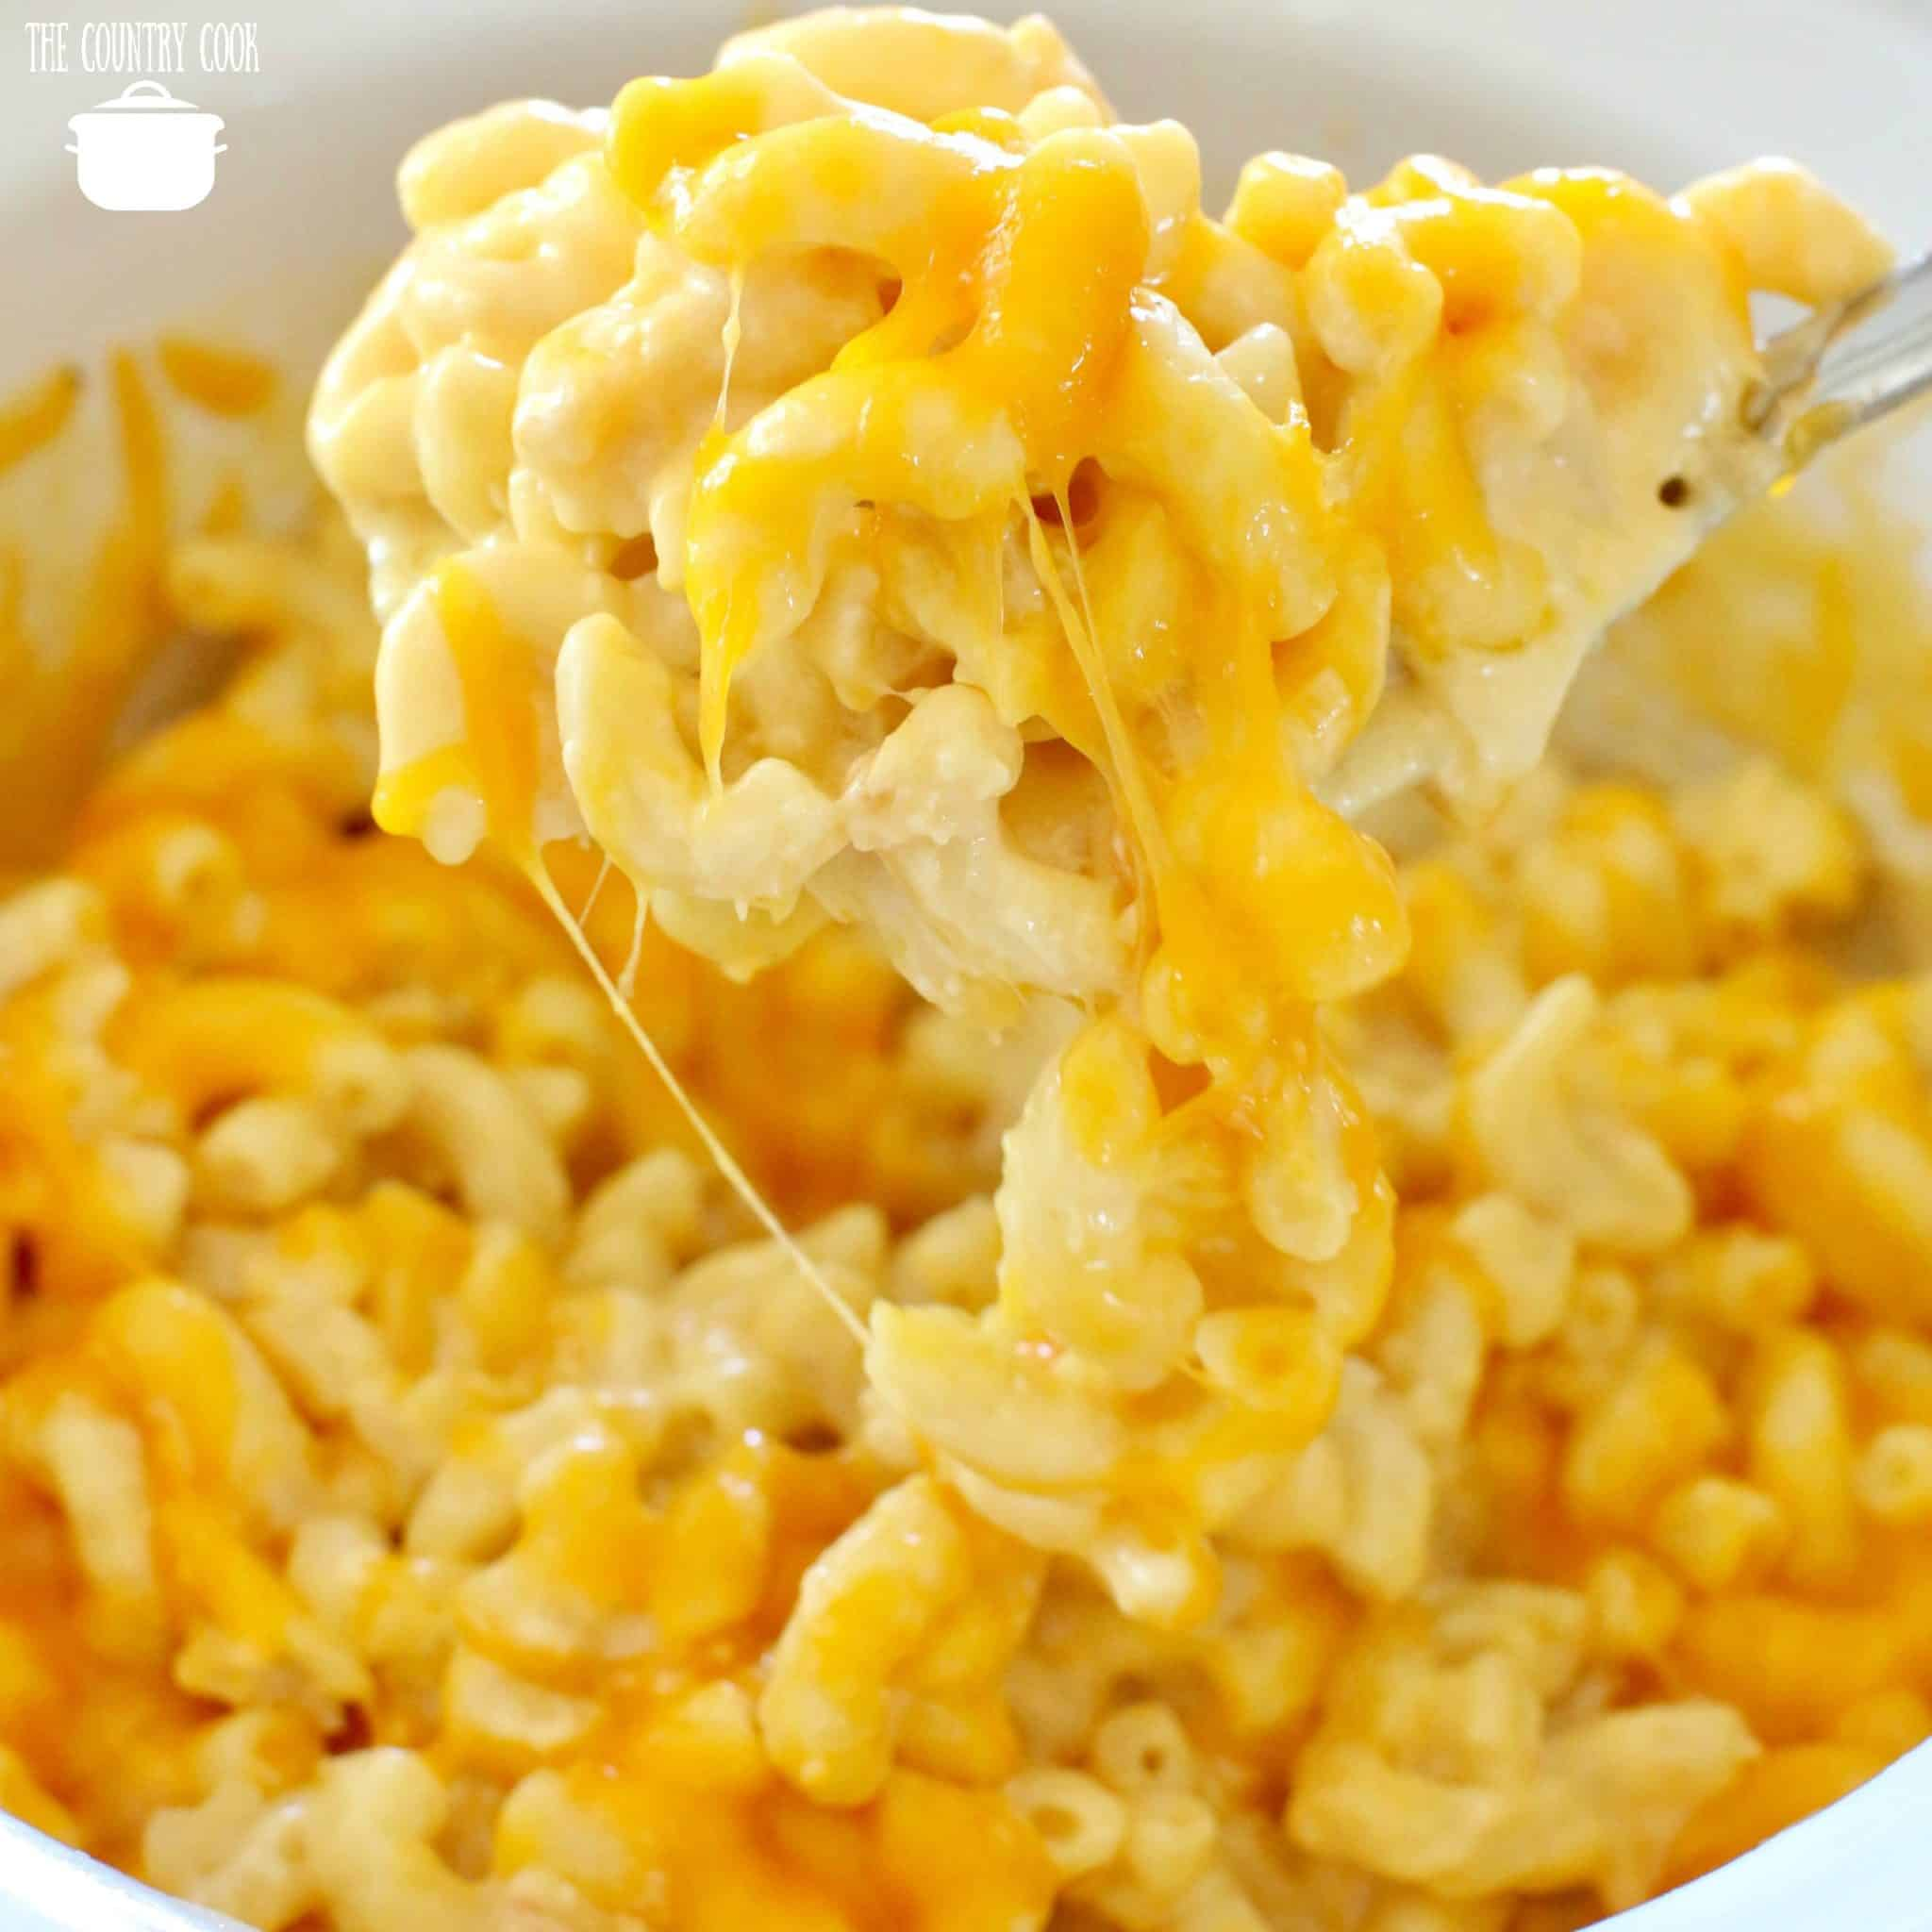 Crock Pot Macaroni and Cheese recipe from The Country Cook. Large spoon scooping out some creamy macaroni and cheese from a crock pot.